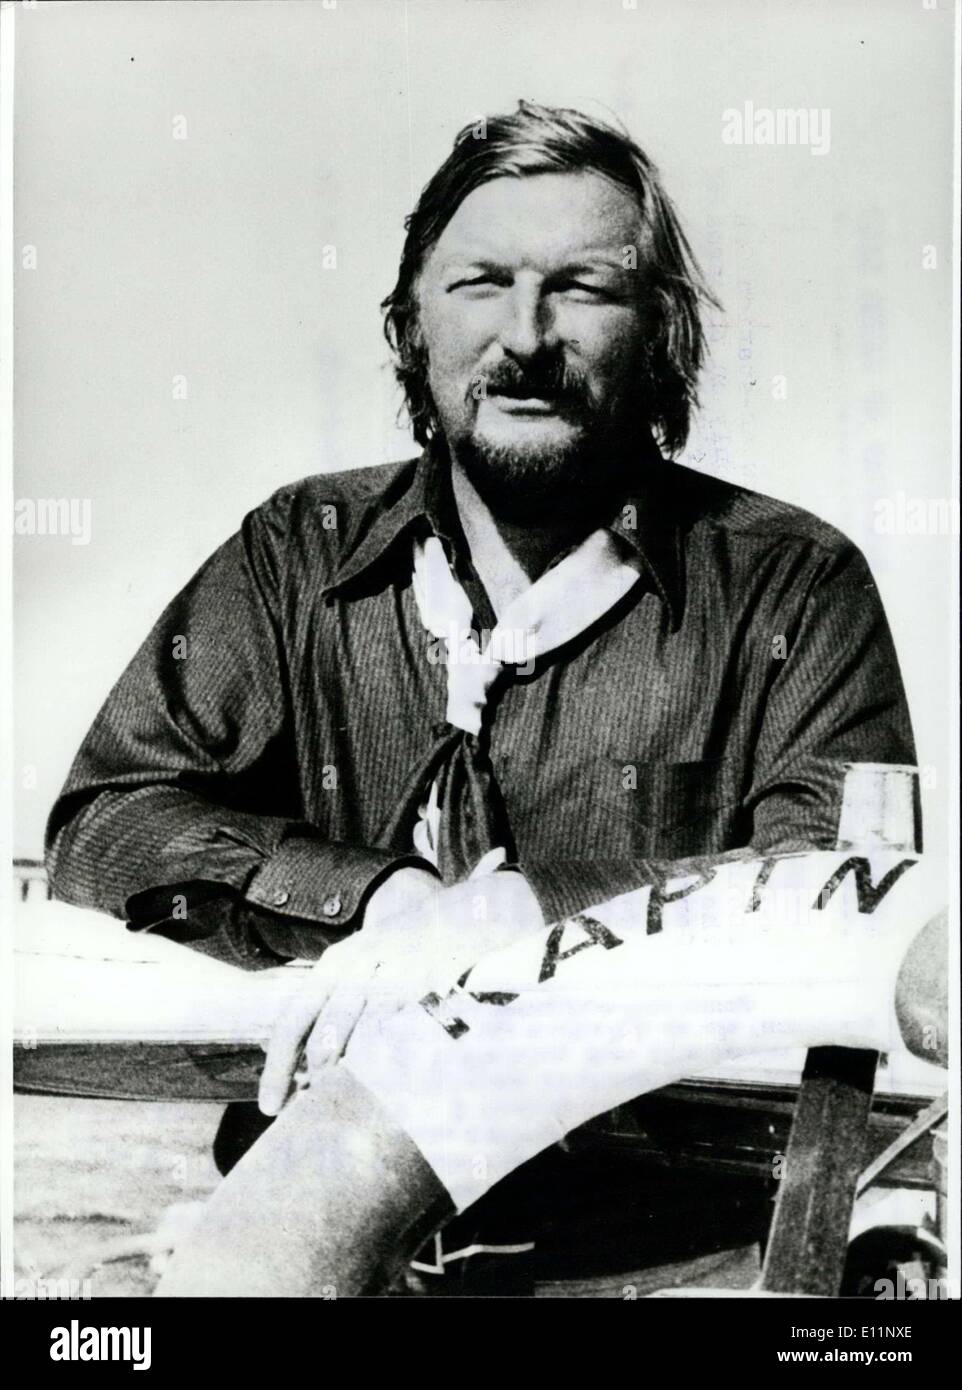 Apr. 27, 1979 - April 27th 1979: 50. Birthday of James Last. Captain James... ..., at the rudder of his sailing yacht. He is also masterly like at the conductor desk, or with the bass, the instrument which James Last plays since his youth. His career is one of the most remarkable in the history of the show business. The popularity of the band leader, arranger and composer is as great as the enthusiasm of his audience of the concerts in Great Britain, Australia, USSR, Canada and the Far East - Stock Image